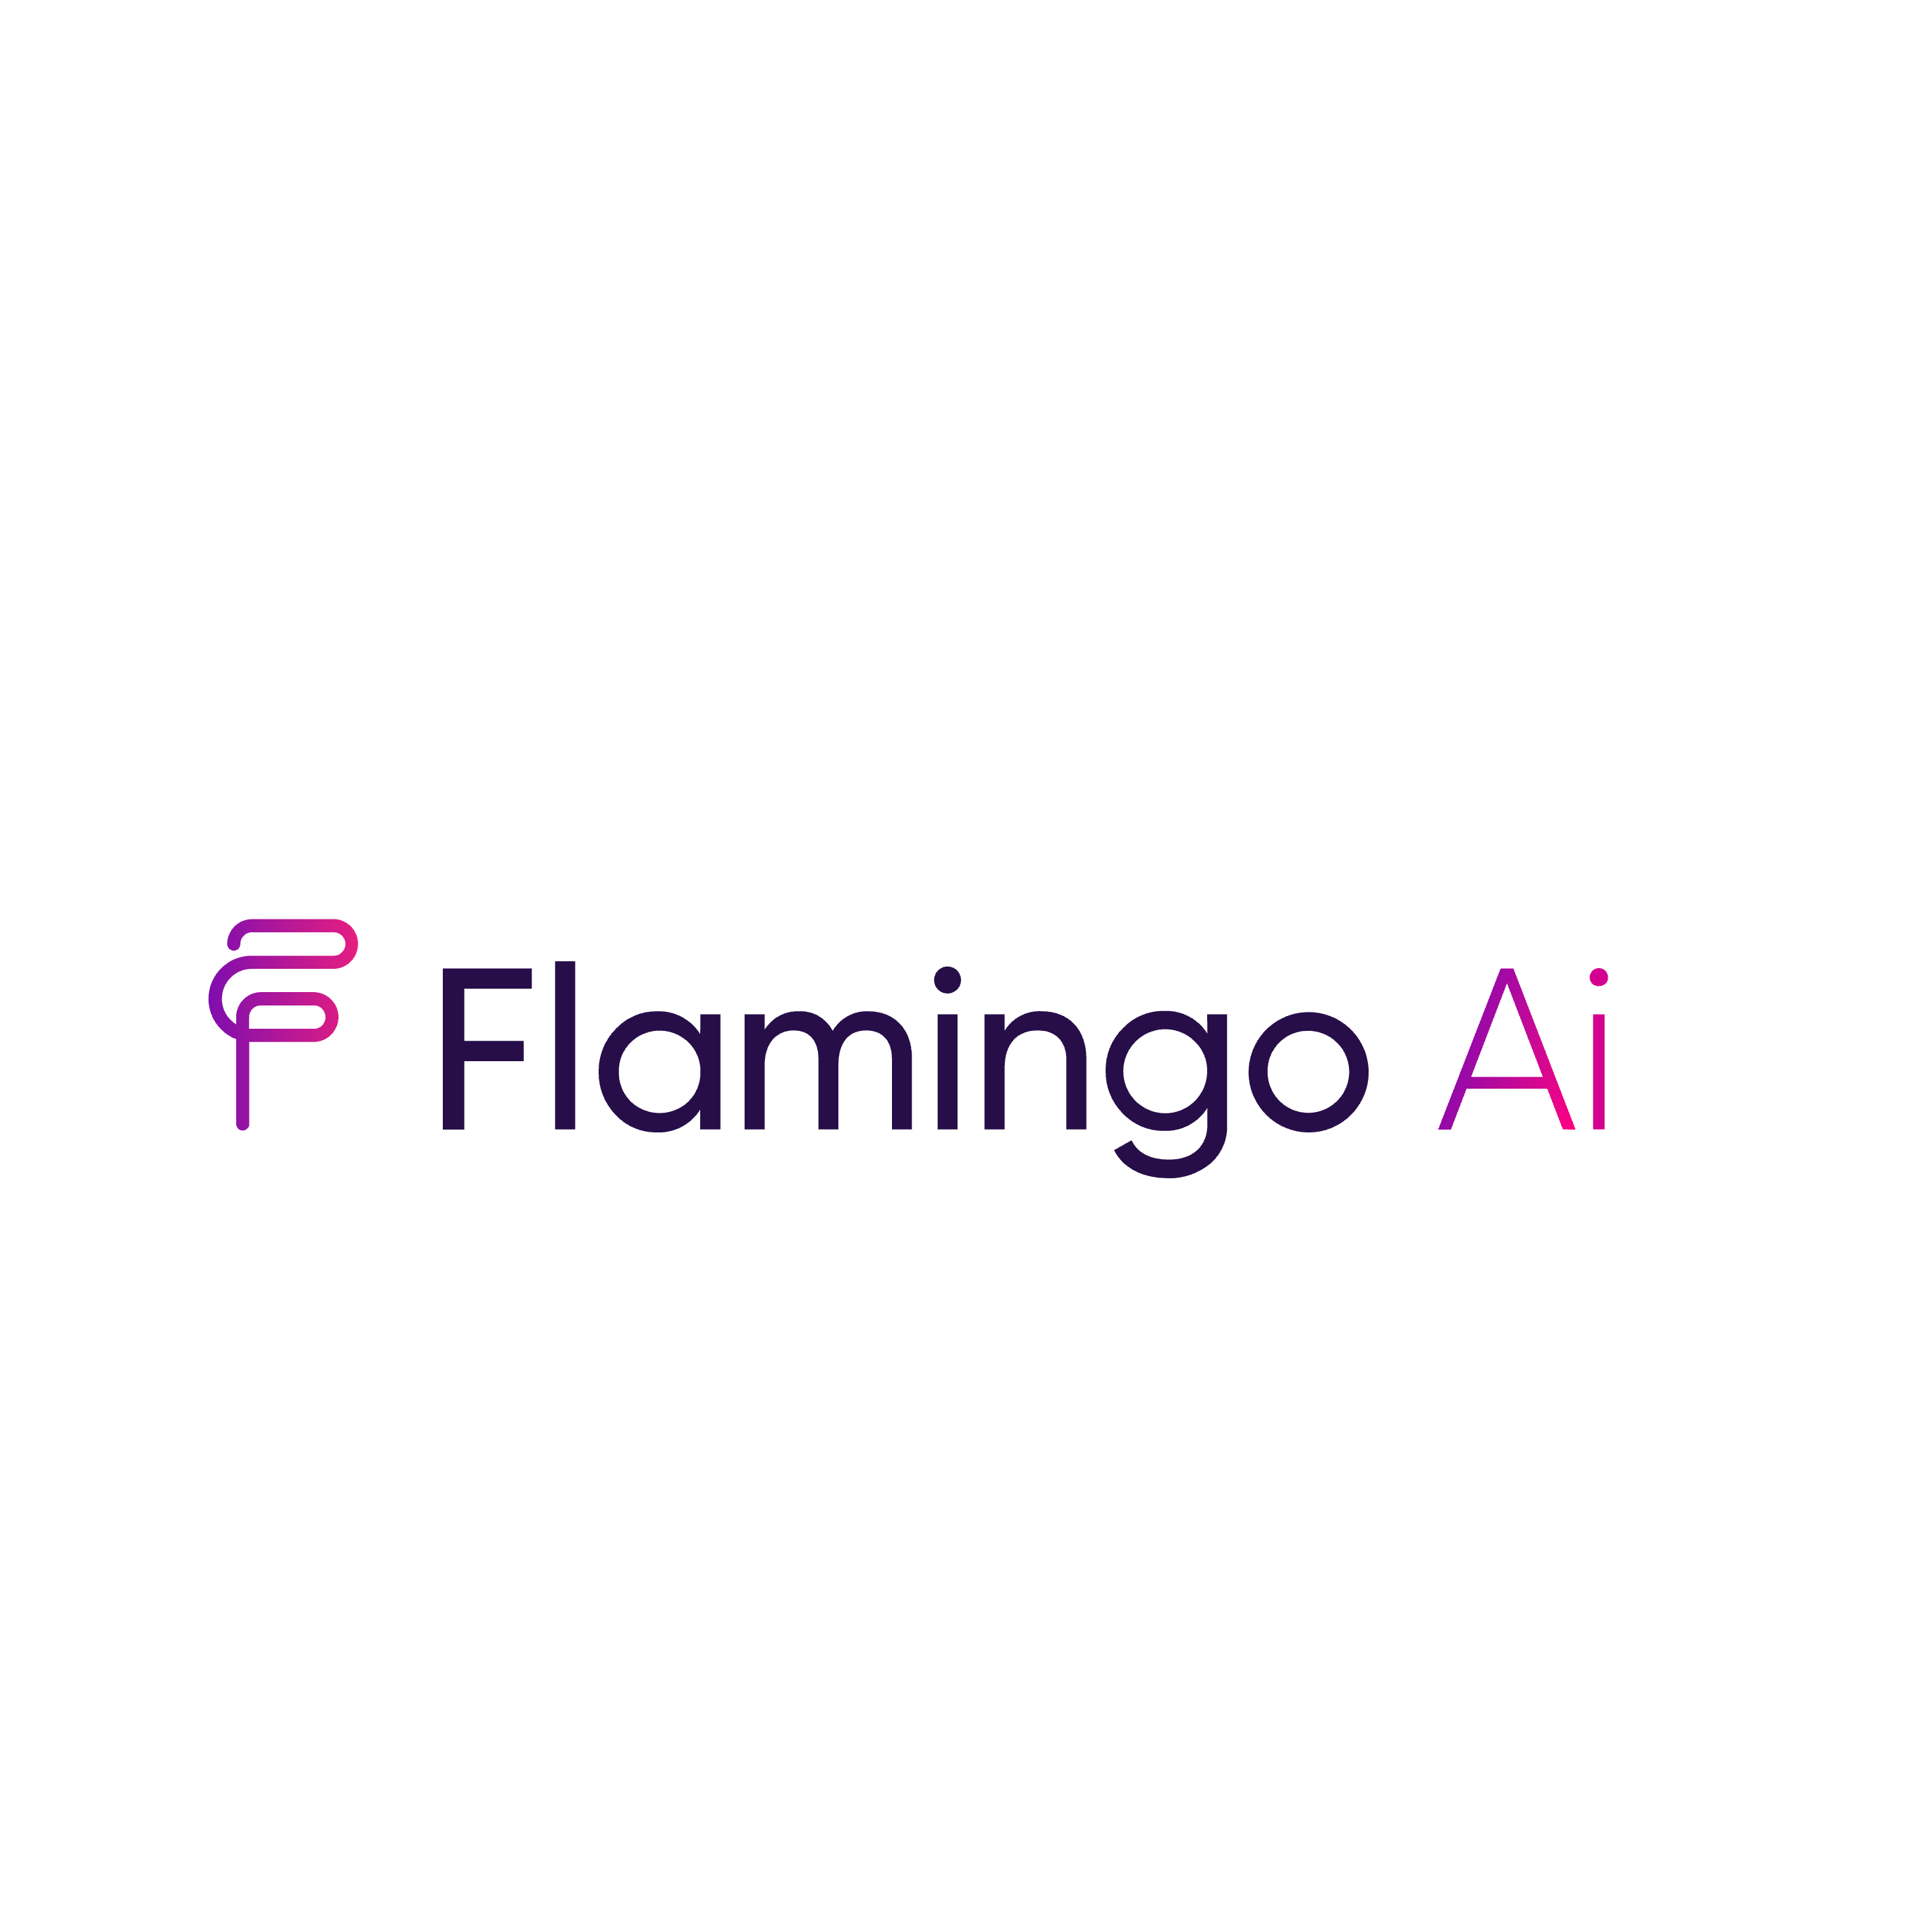 FLAMINGO AI LIMITED